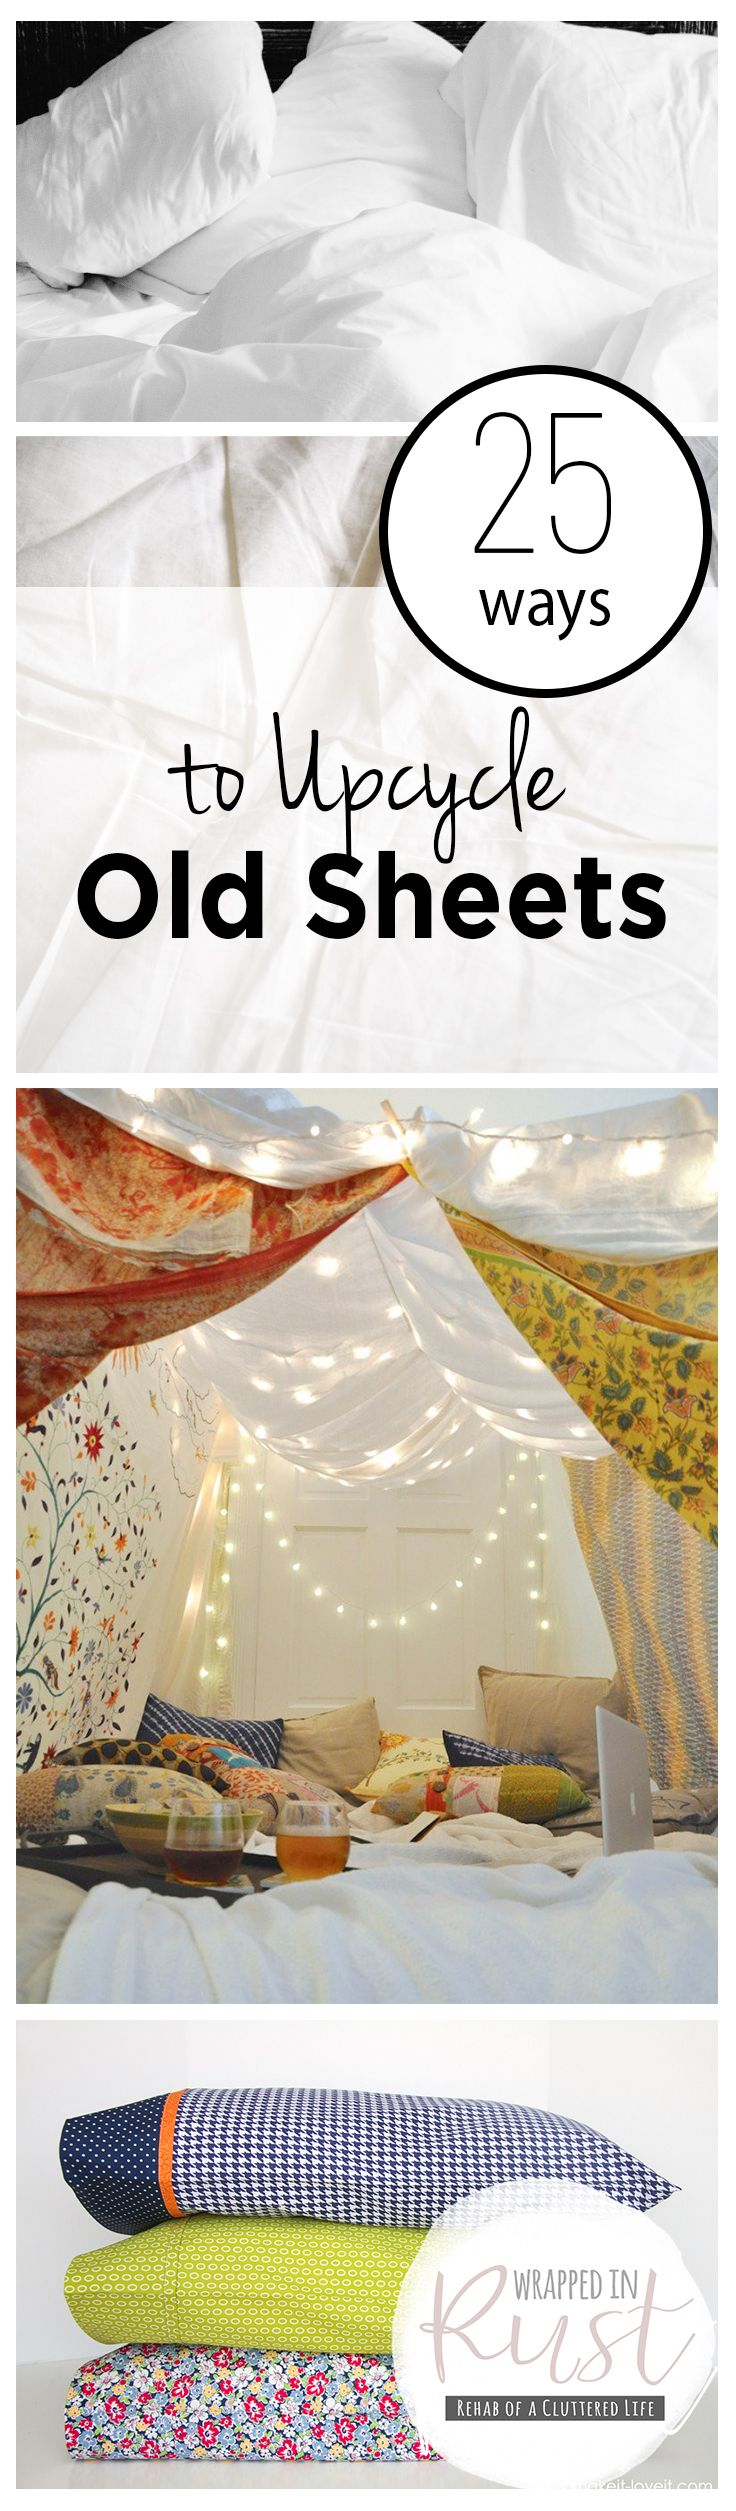 How to Reuse Old Sheets, How to Upcycle Old Sheets, Things to Do With Old Sheets, Repurpose Projects, How to Repurpose Old Sheets, Life Hacks, Repurpose, Popular Pin